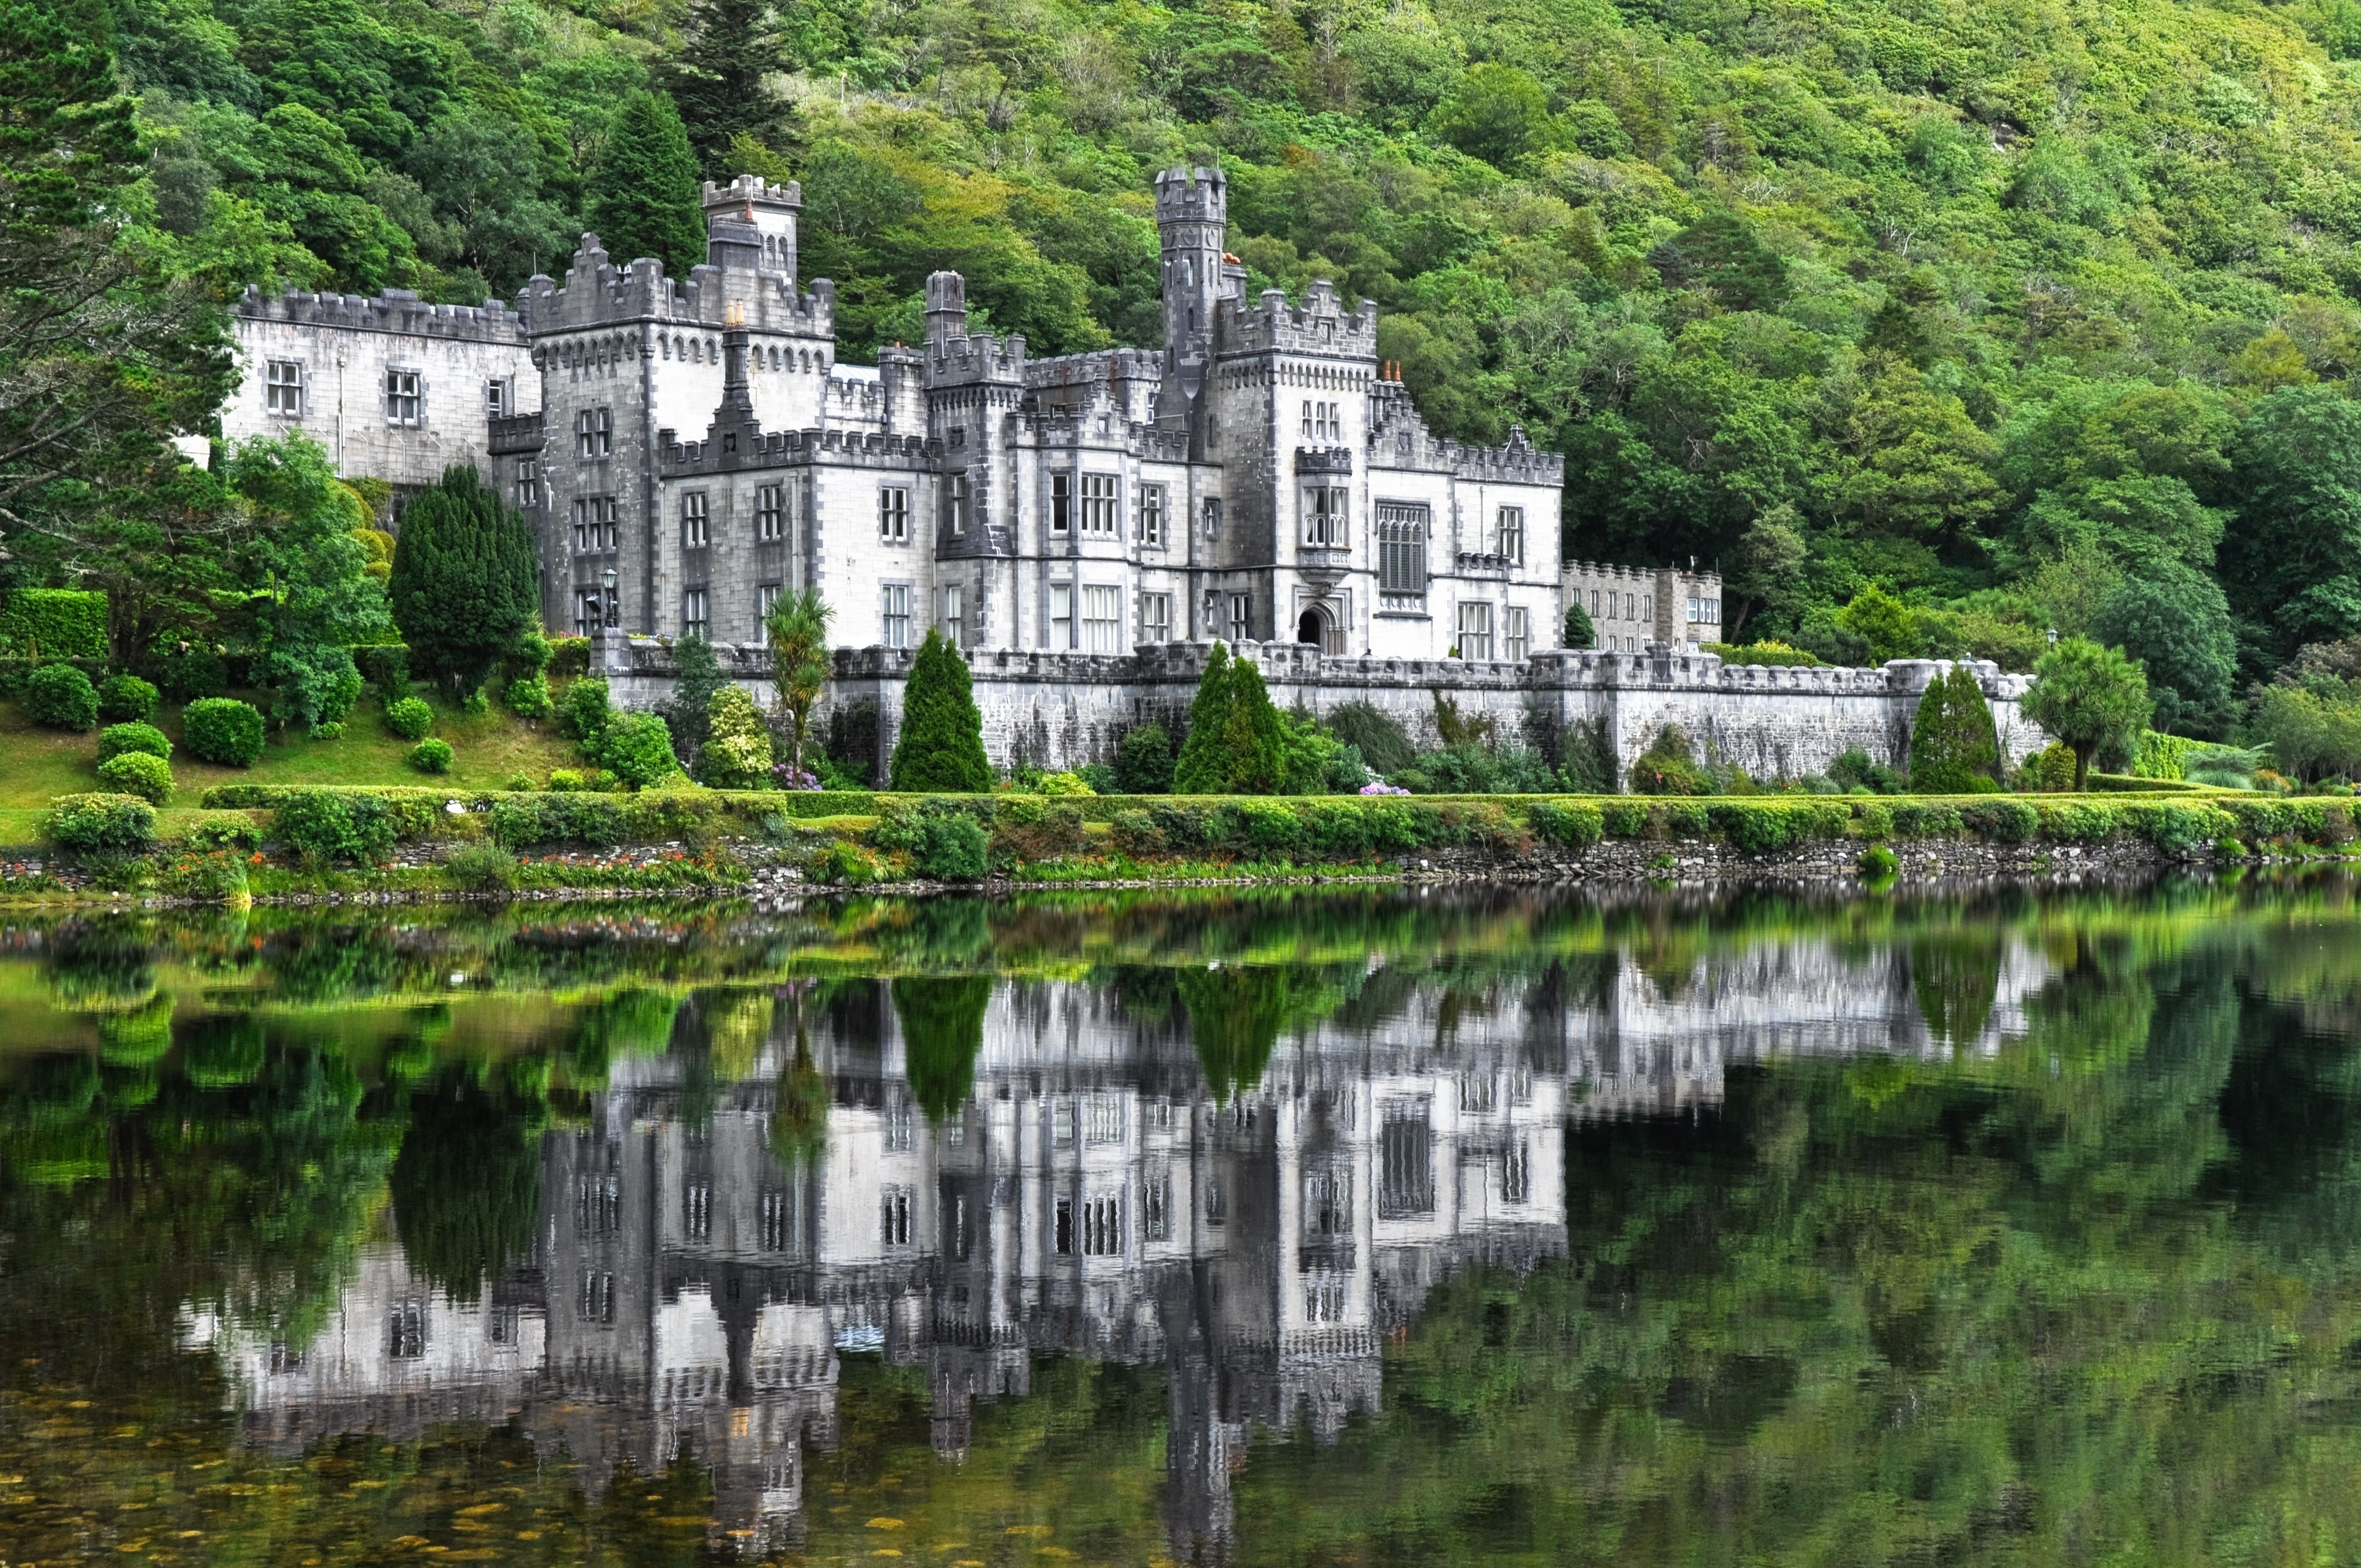 Kylemore Abbey is home to a community of Benedictine nuns who sought refuge in Ireland after World War 1. Entrance is around $15 and includes a History Talk of the Abbey #Ireland